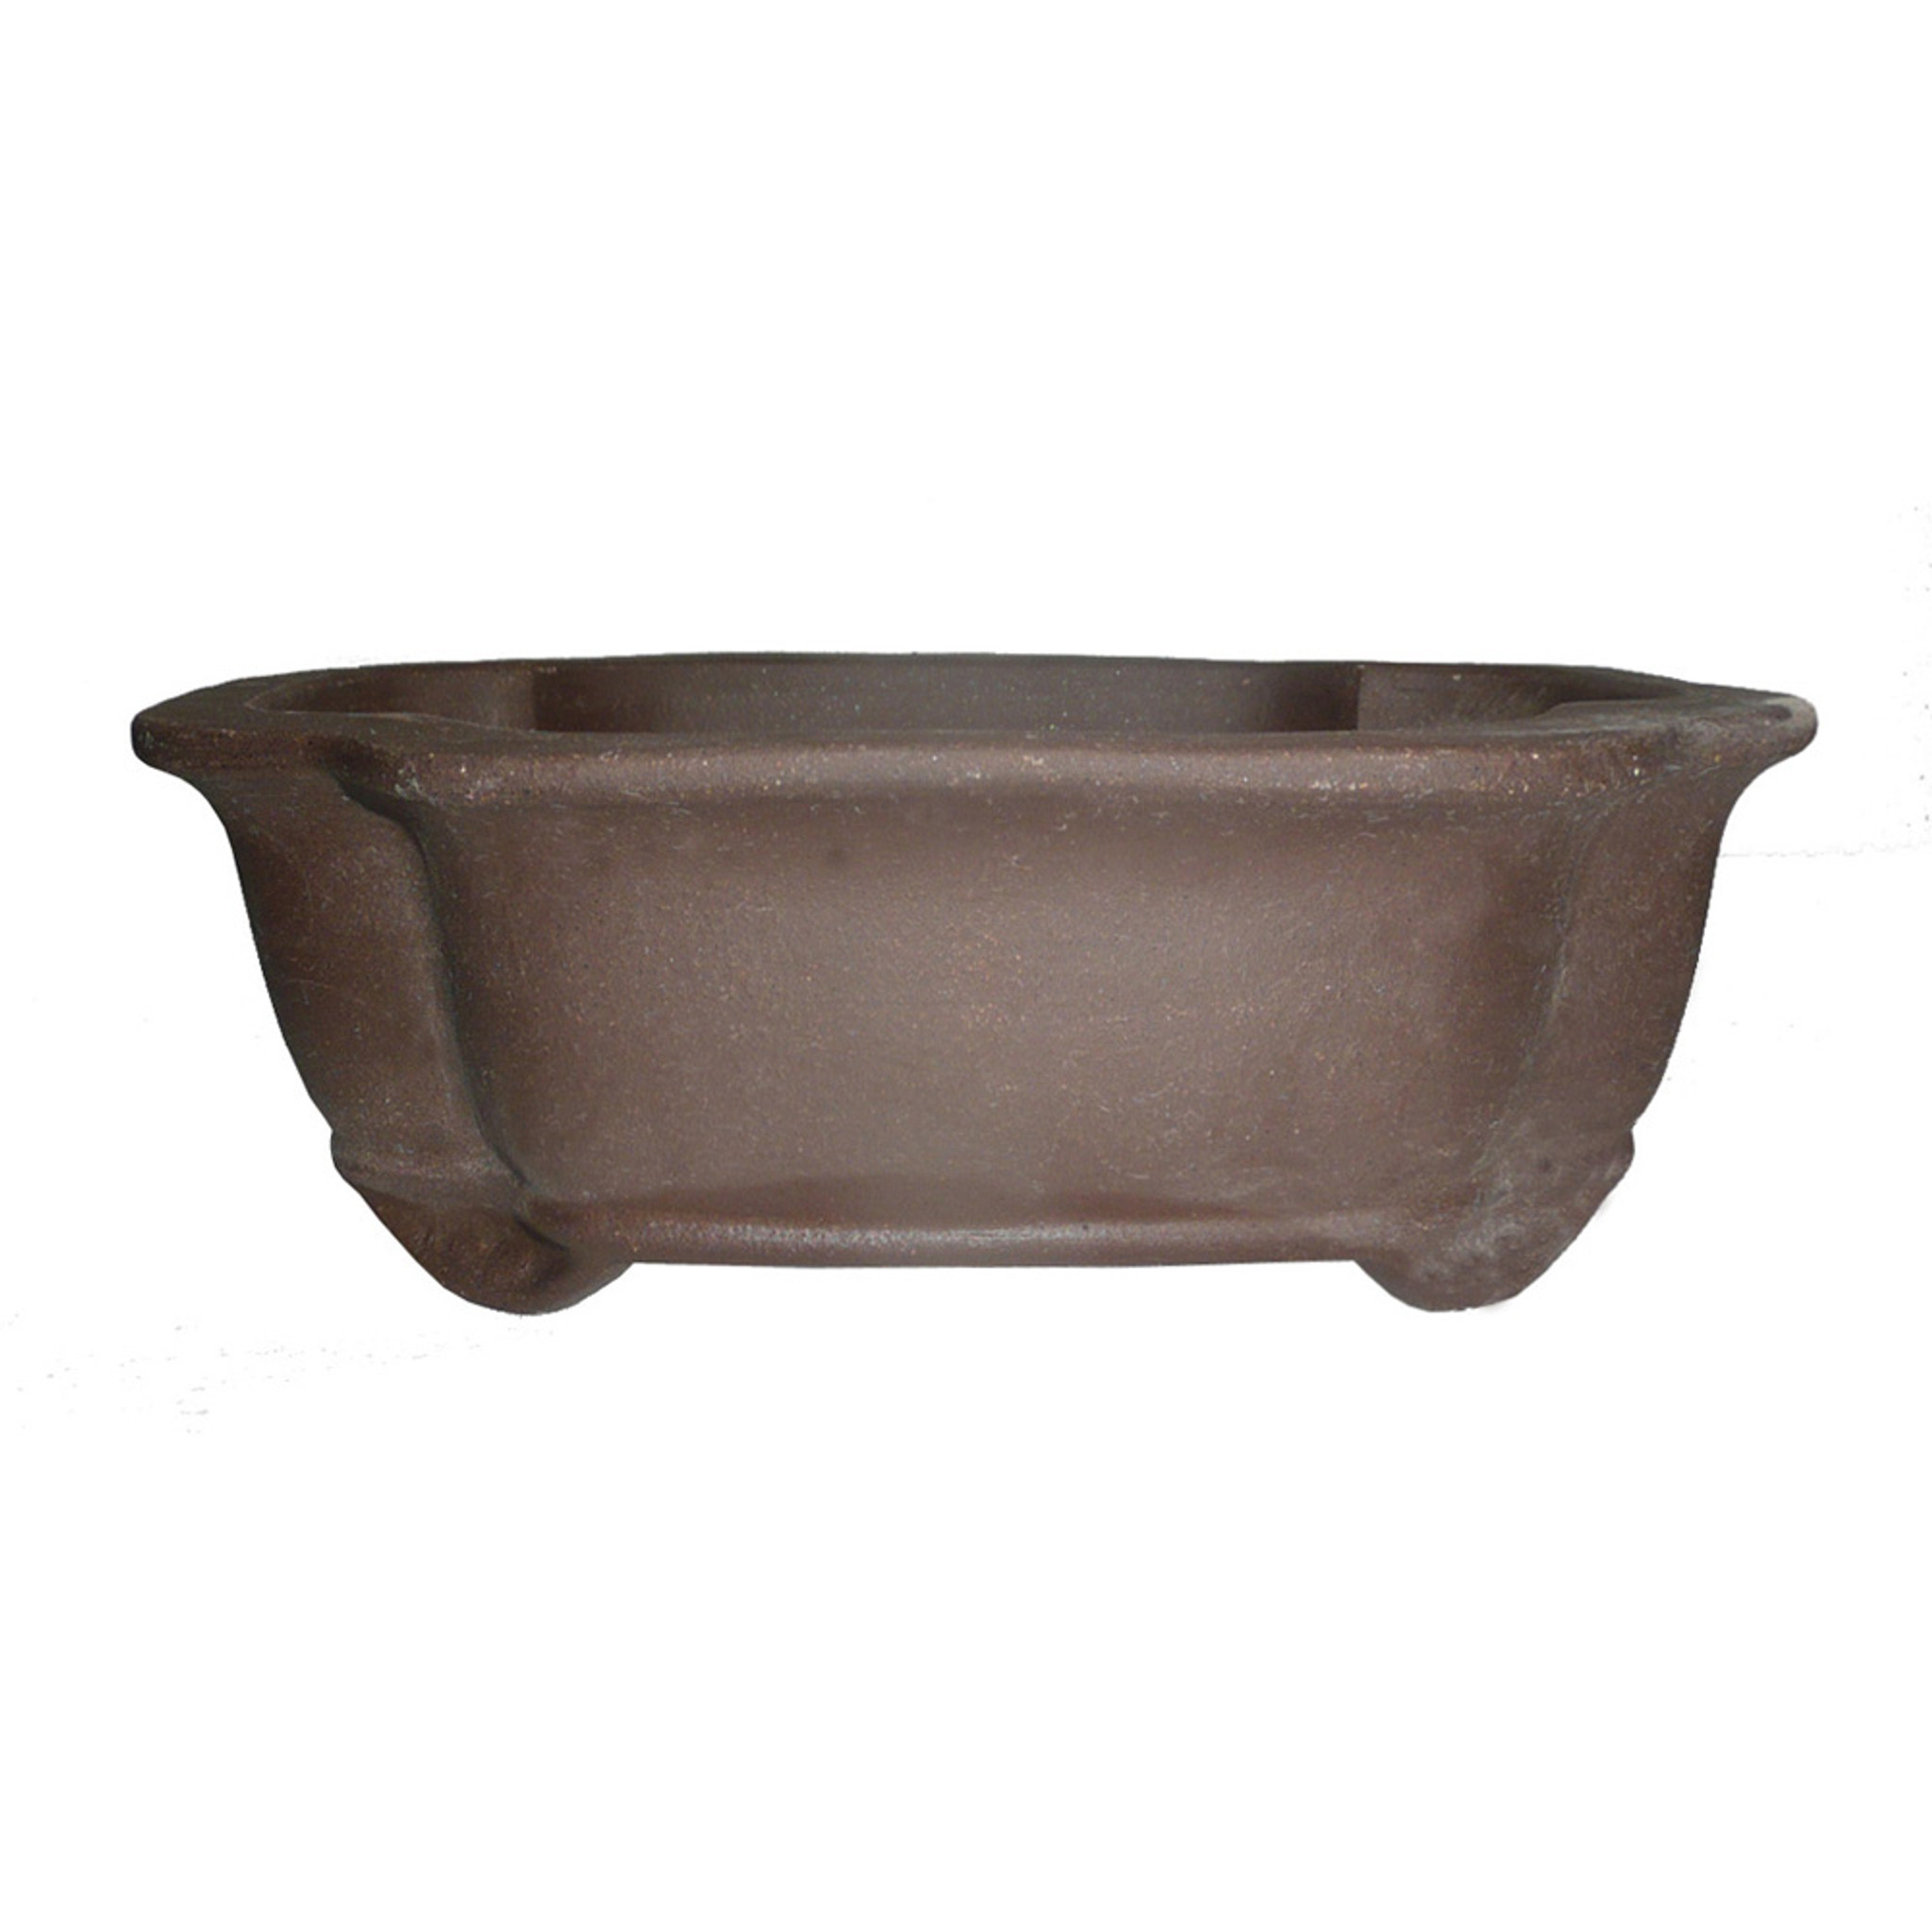 Brussel S 12 Unglazed Ceramic Lotus Bonsai Pot Brussel S Bonsai